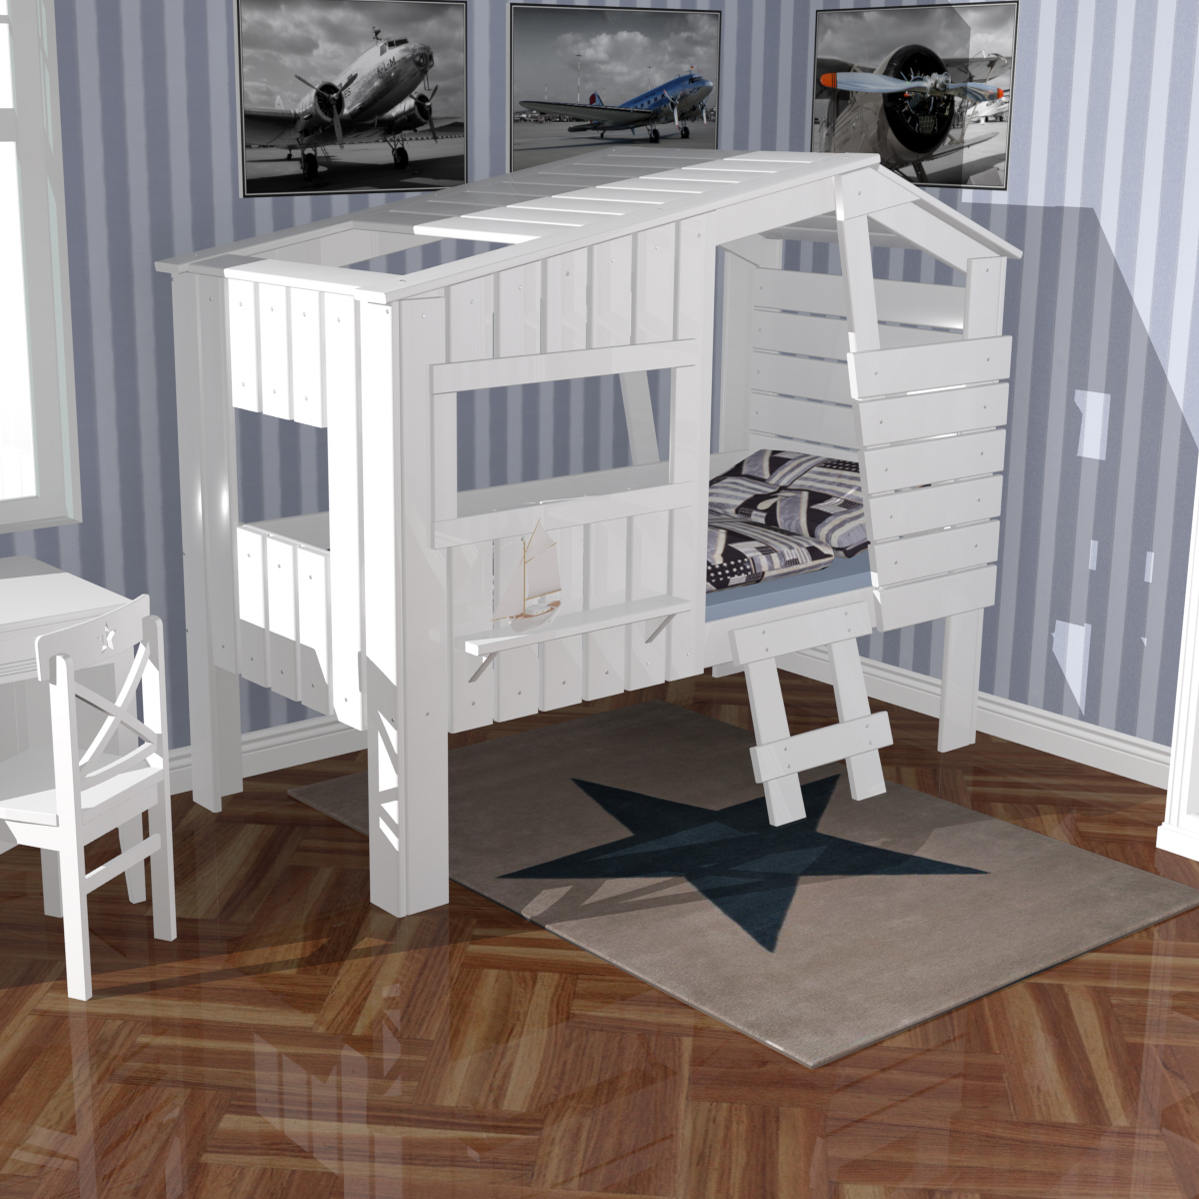 h ttenbett spielbett strandhaus weiss massivholz 90x200cm dannenfelser kinderm bel. Black Bedroom Furniture Sets. Home Design Ideas